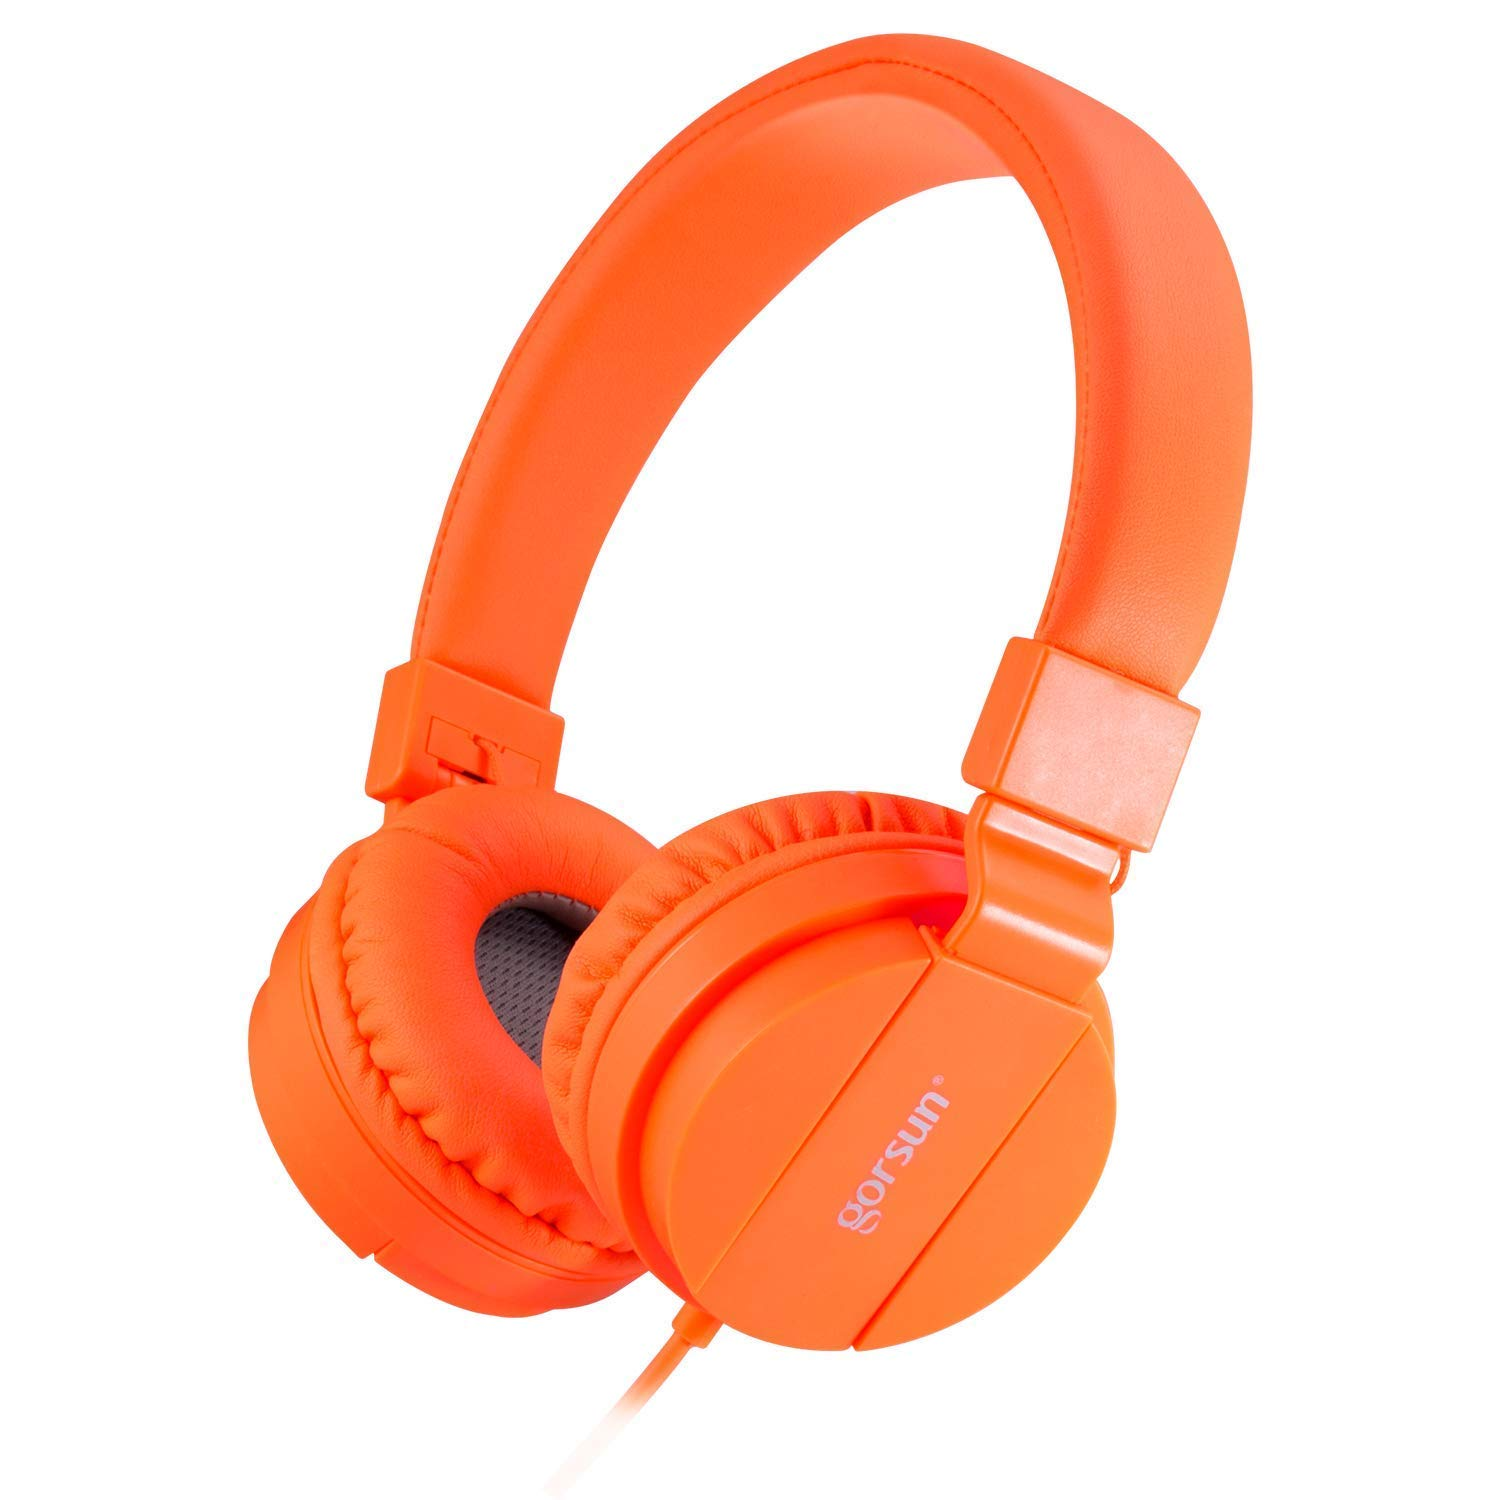 ONTA gorsun Foldable On Ear Audio Adjustable Lightweight Headphone for chlidren Cellphones Smartphones iPhone Laptop Computer Mp3/4 Earphones (Orange)